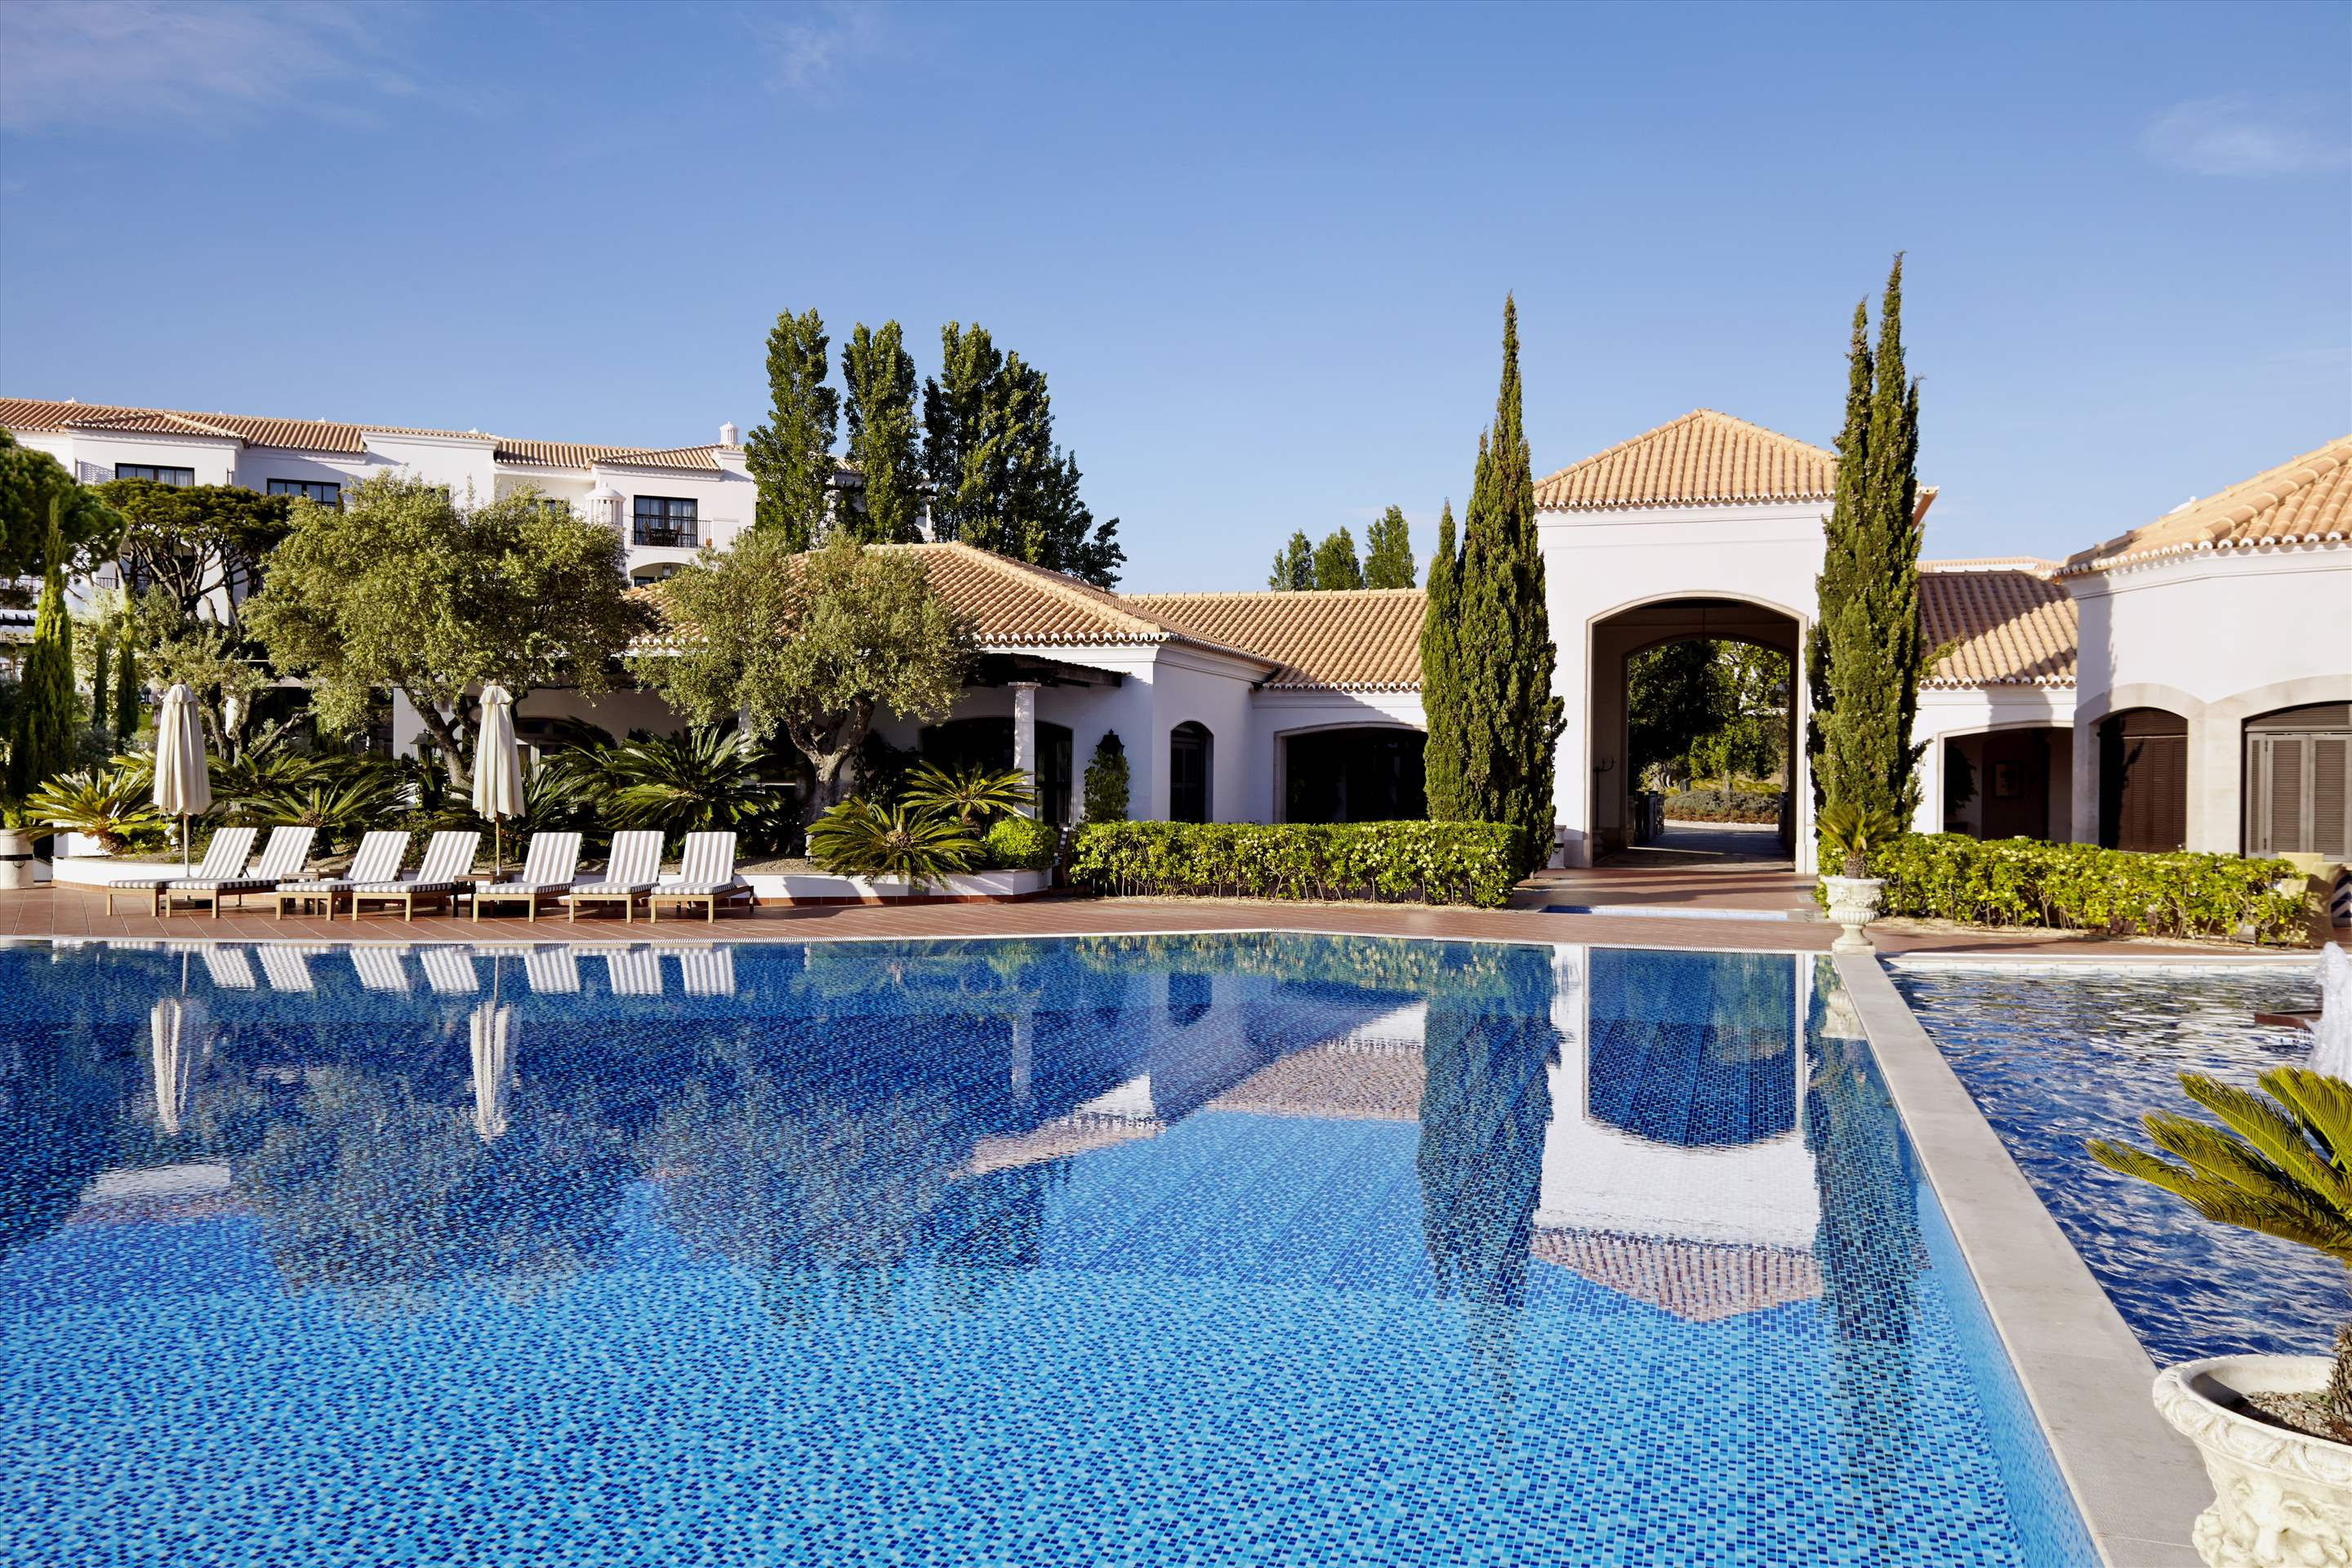 Pine Cliffs Residence, Penthouse 3 bed luxury suite, 3 bedroom apartment in Pine Cliffs Resort, Algarve